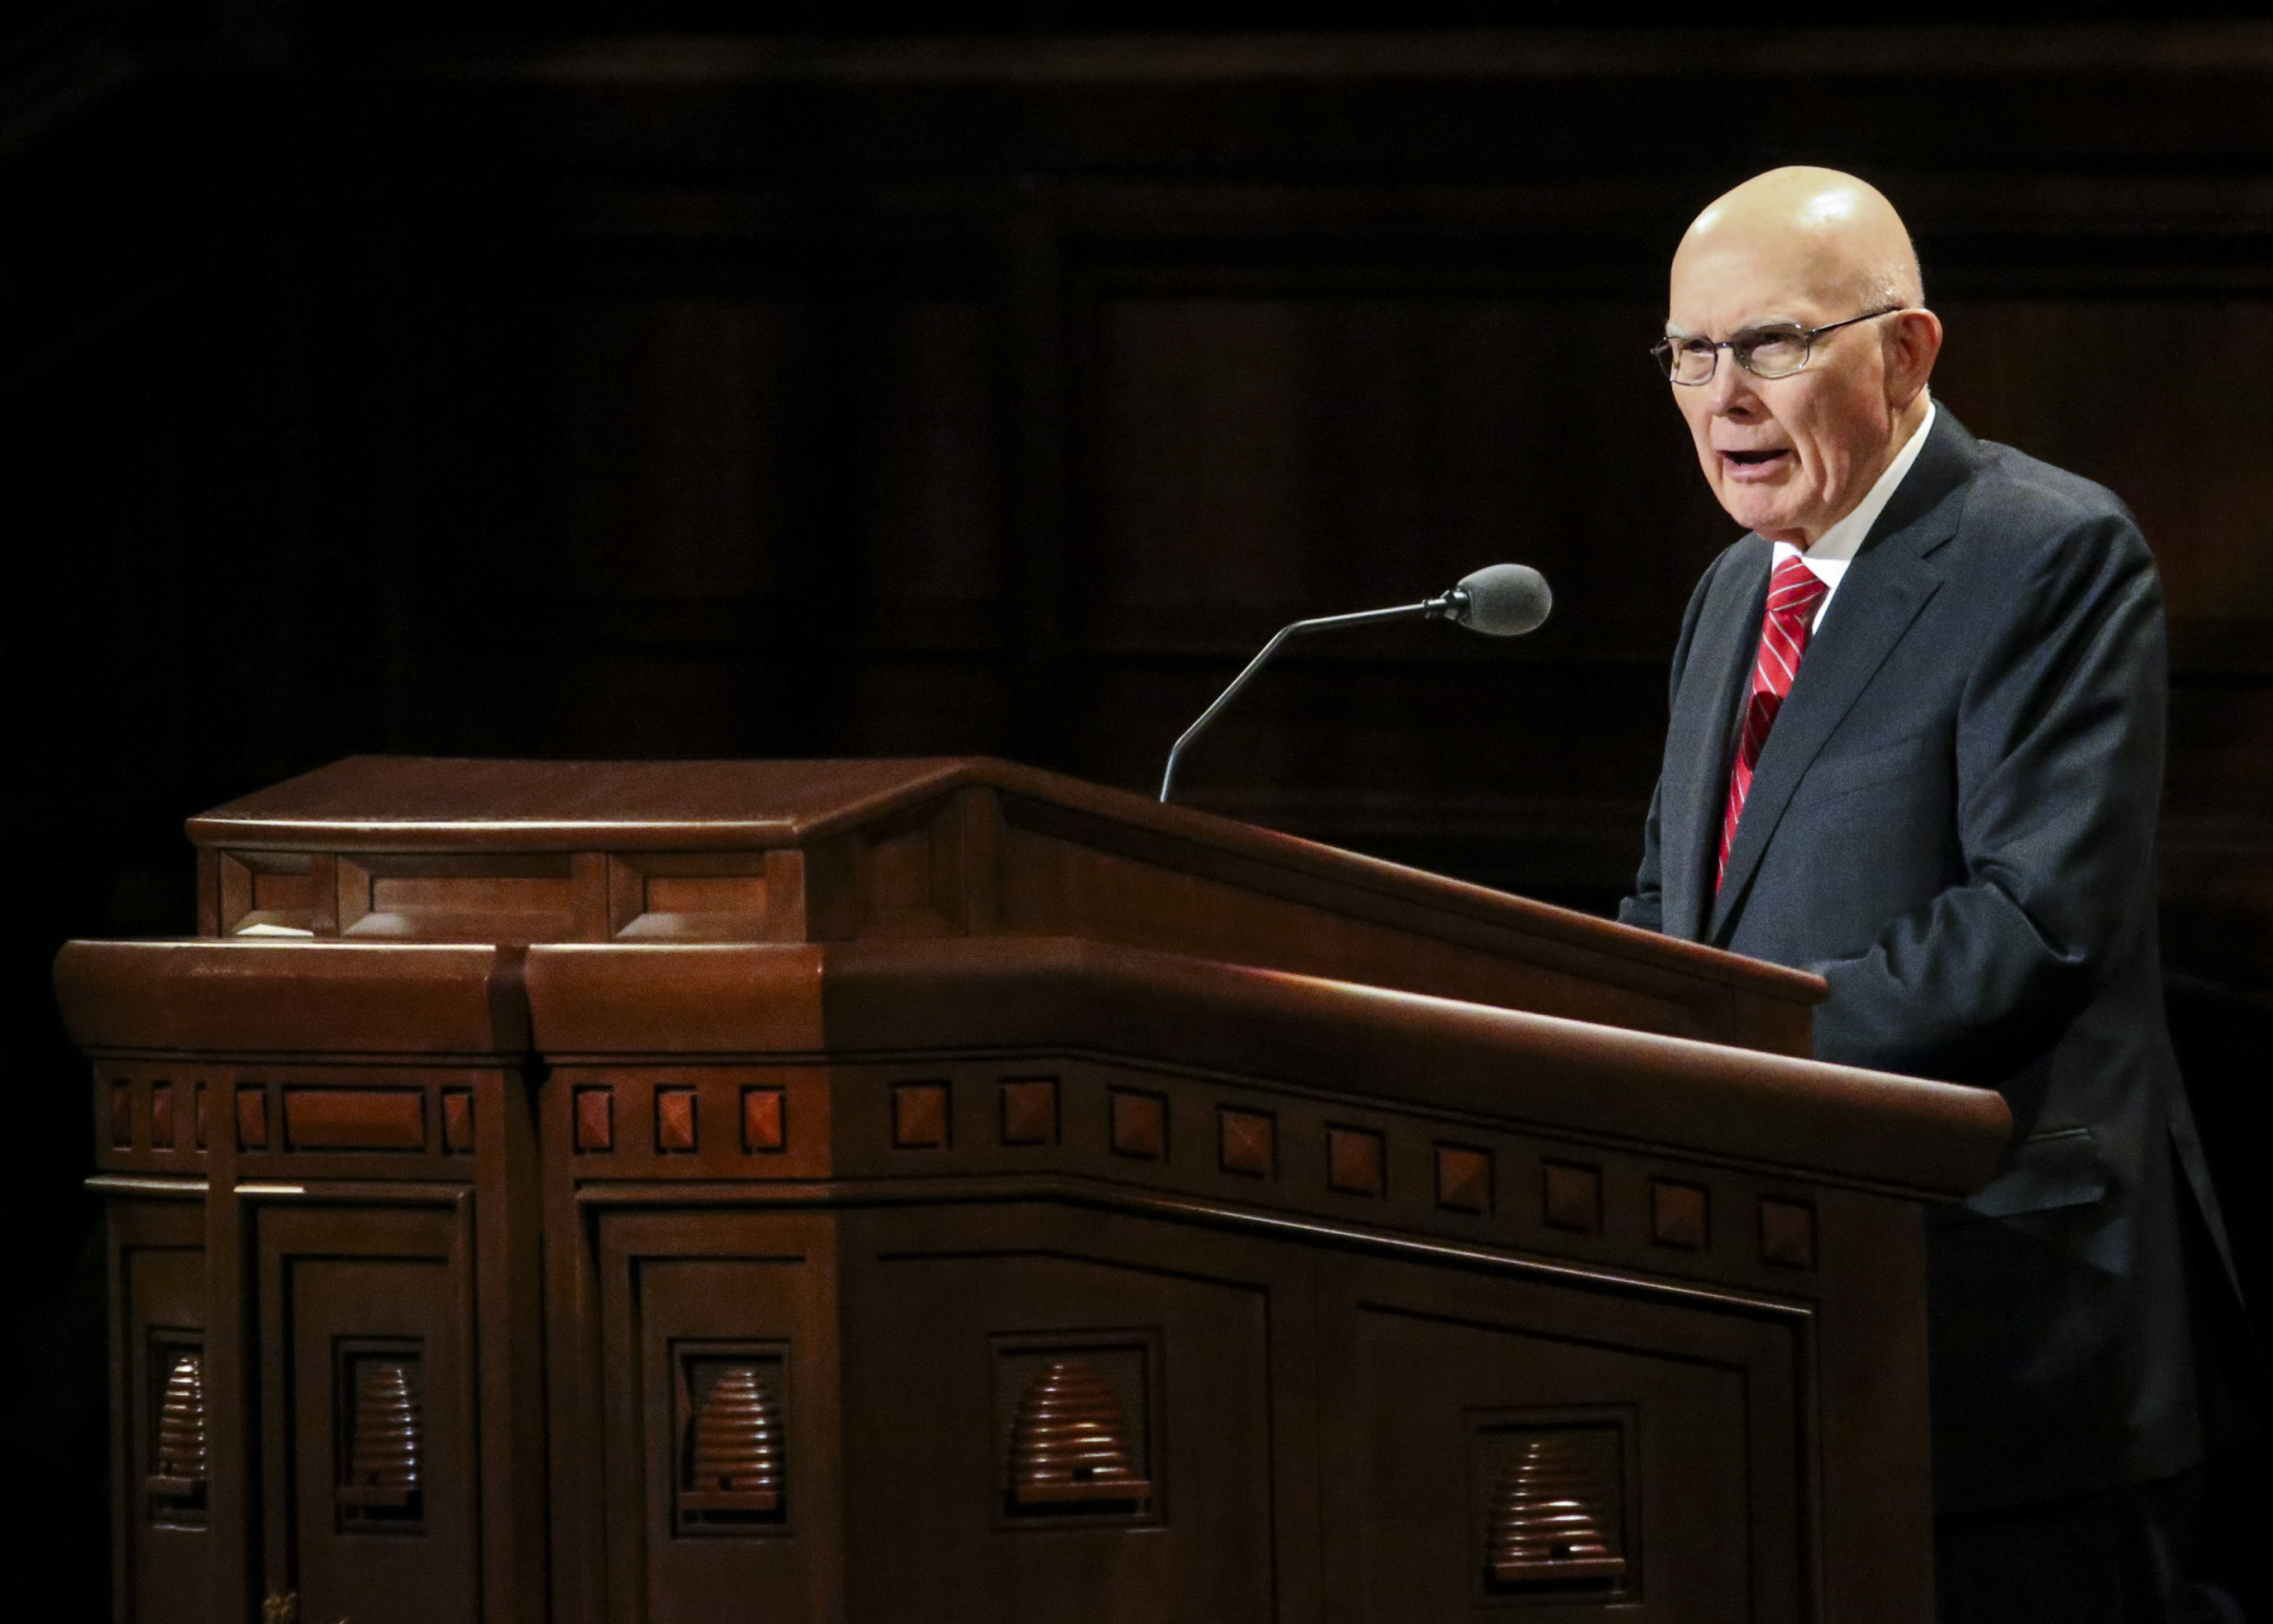 President Dallin H. Oaks, first counselor in the First Presidency, speaks during the women's session of the 189th Semiannual General Conference of The Church of Jesus Christ of Latter-day Saints at the Conference Center in Salt Lake City on Saturday, Oct. 5, 2019.